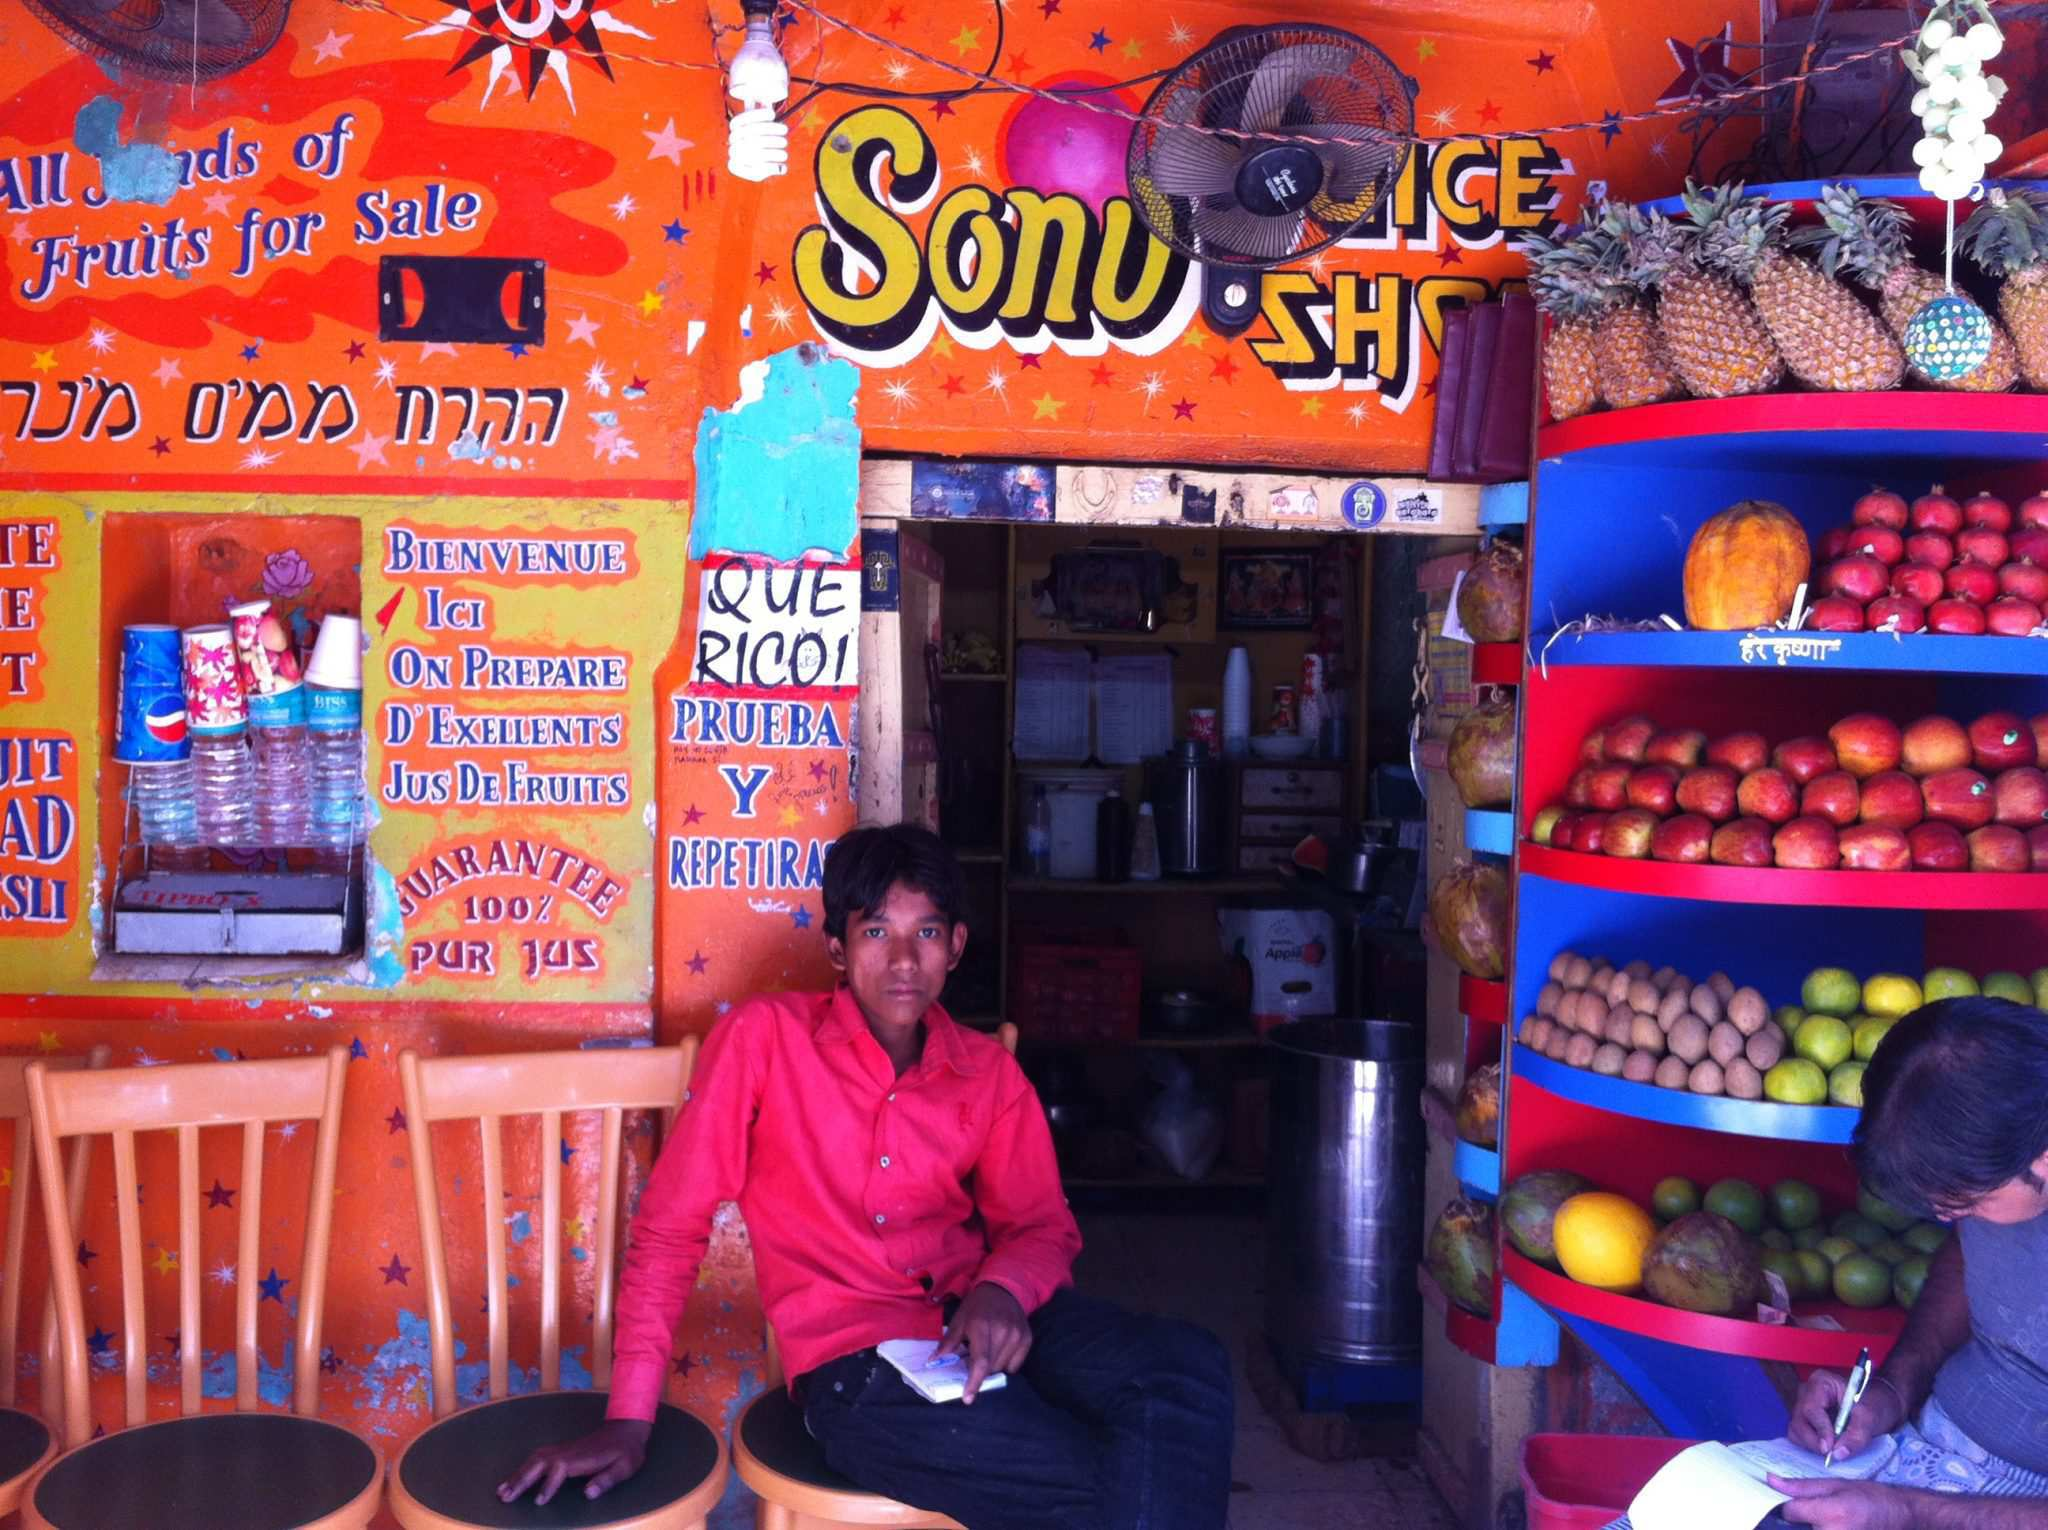 Sonu Juice Shop